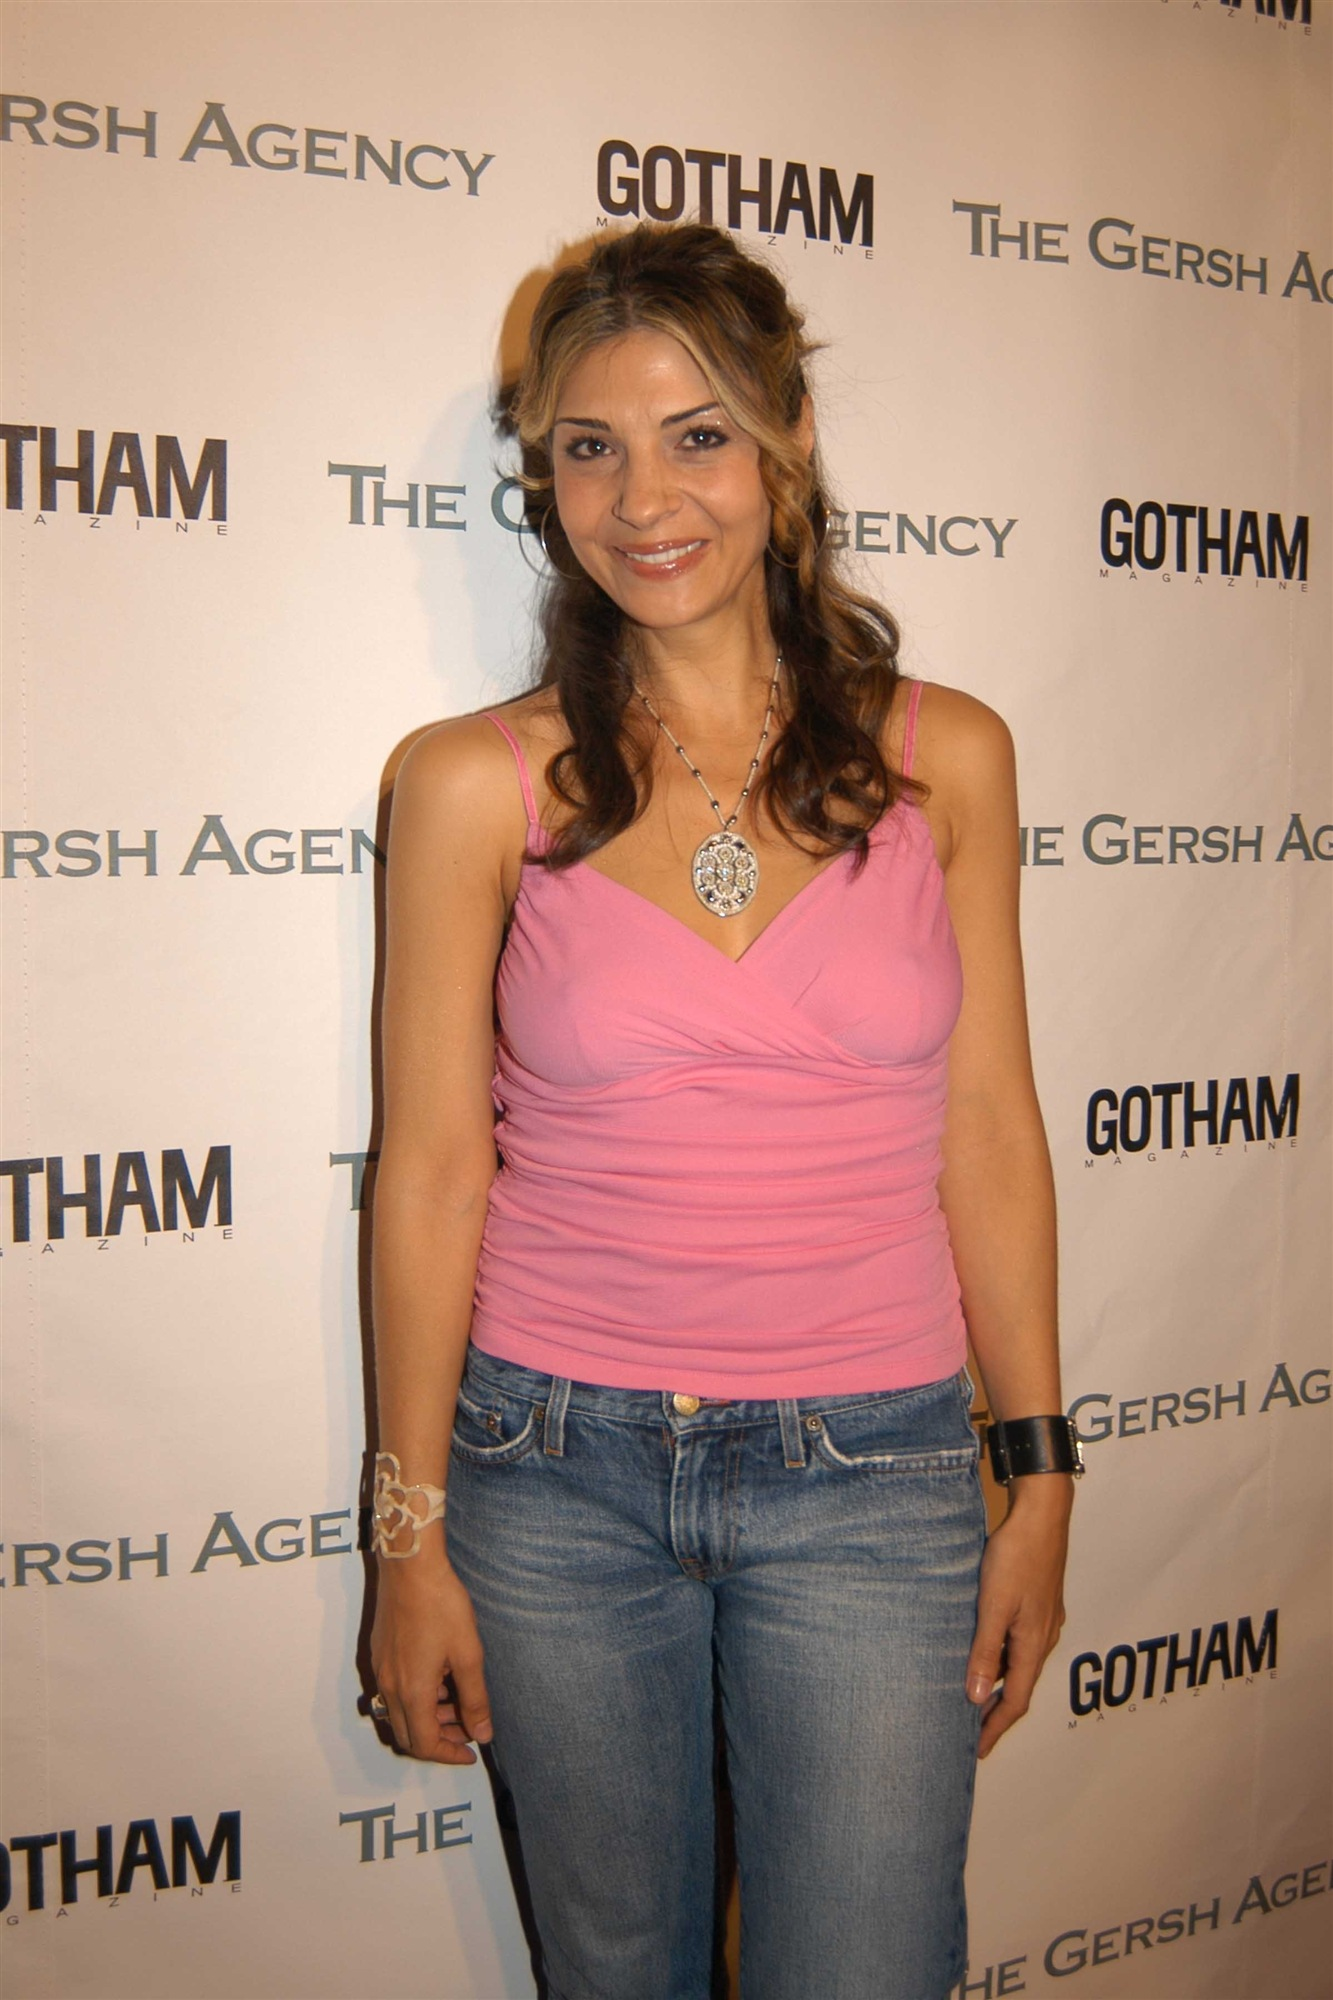 Callie Model http://www.top10point.com/wallpaper/callie-thorne/43338.html